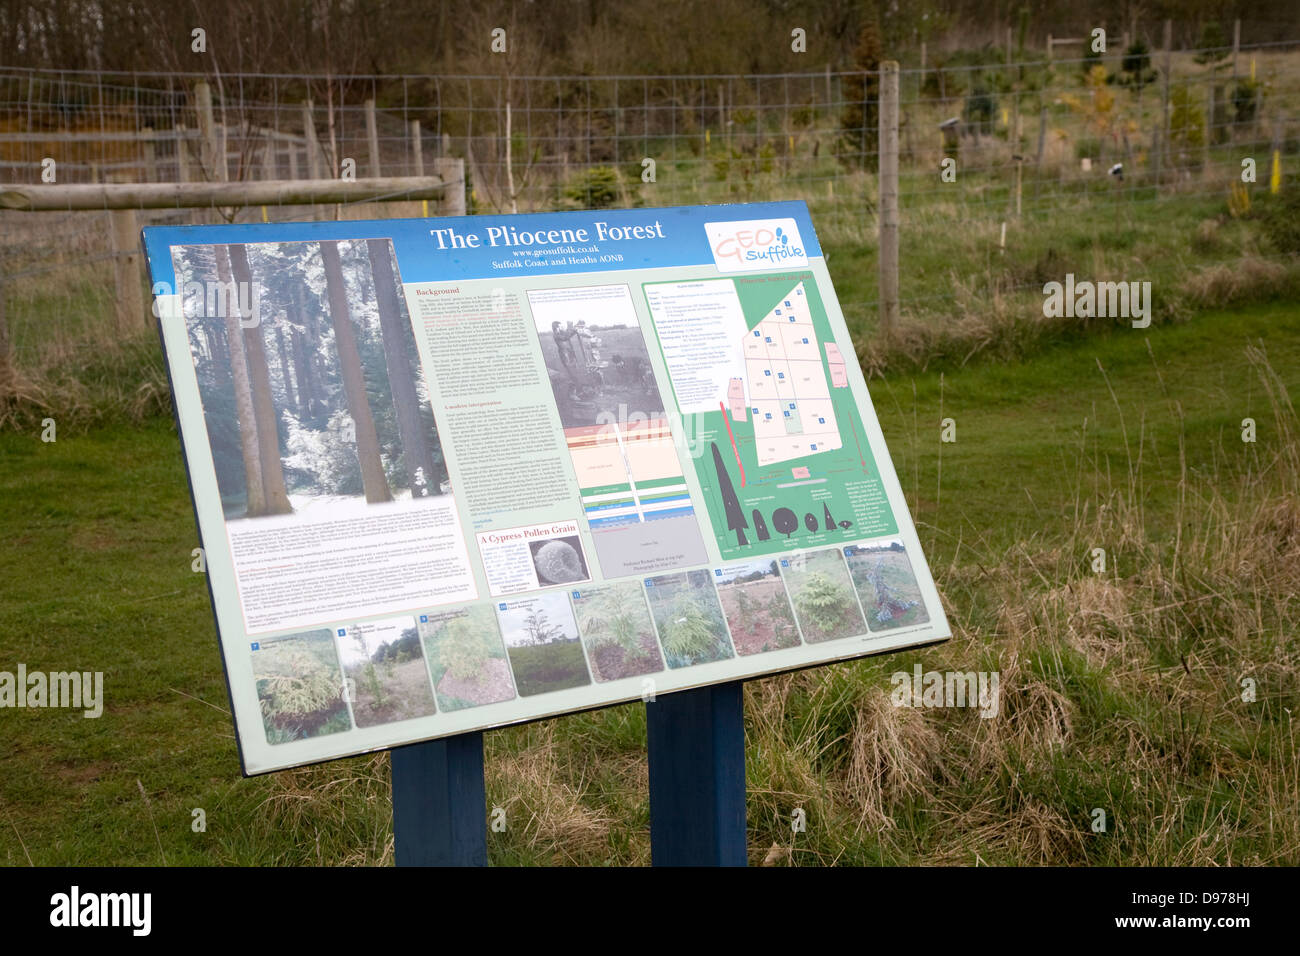 Information board for the Pliocene forest planted at Sutton Knoll SSSI geological site, Sutton, Suffolk, England - Stock Image